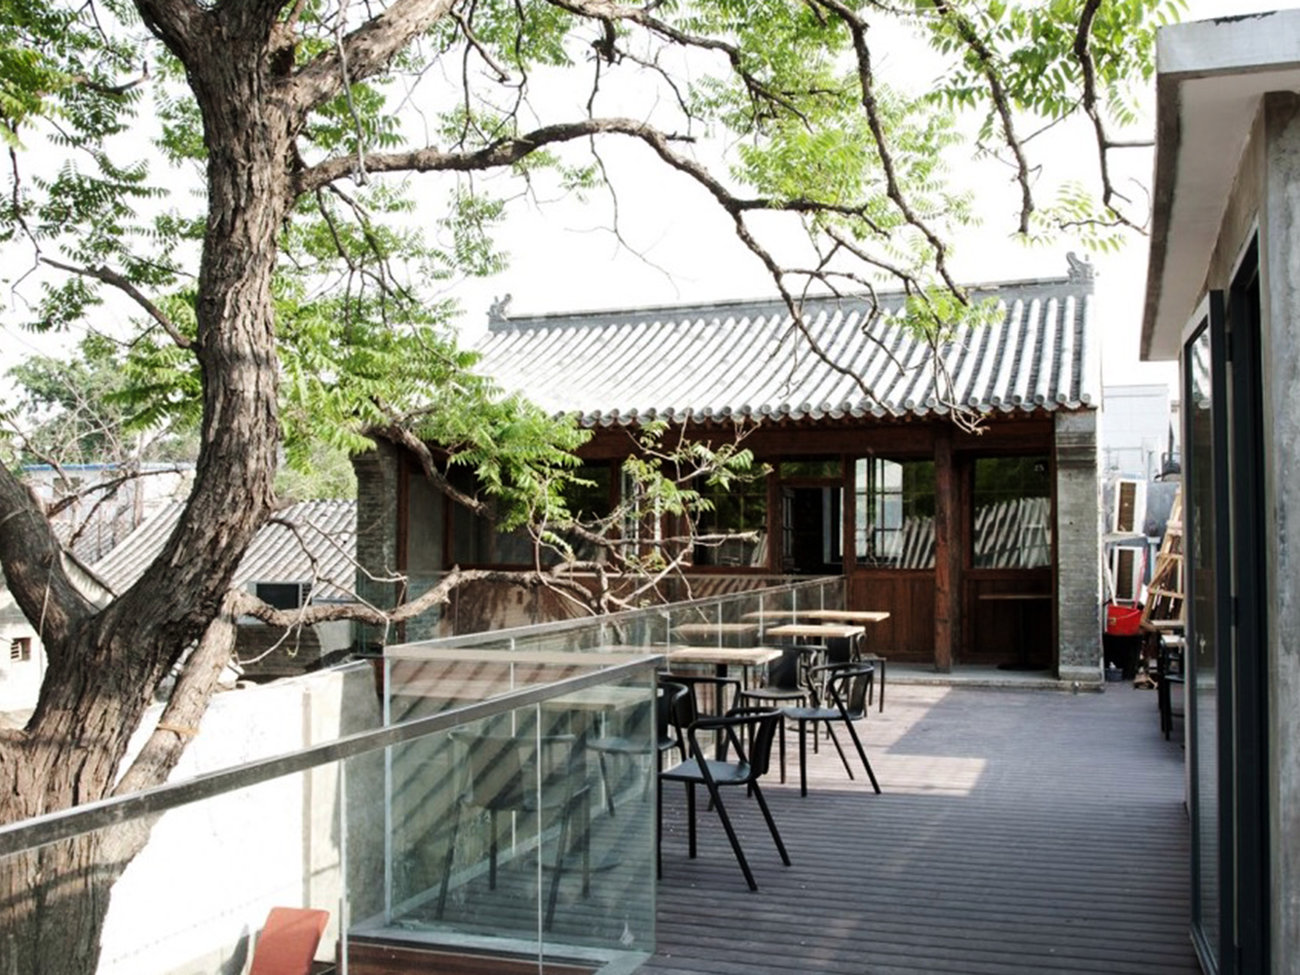 Cafe Zarah Restaurant in Beijing